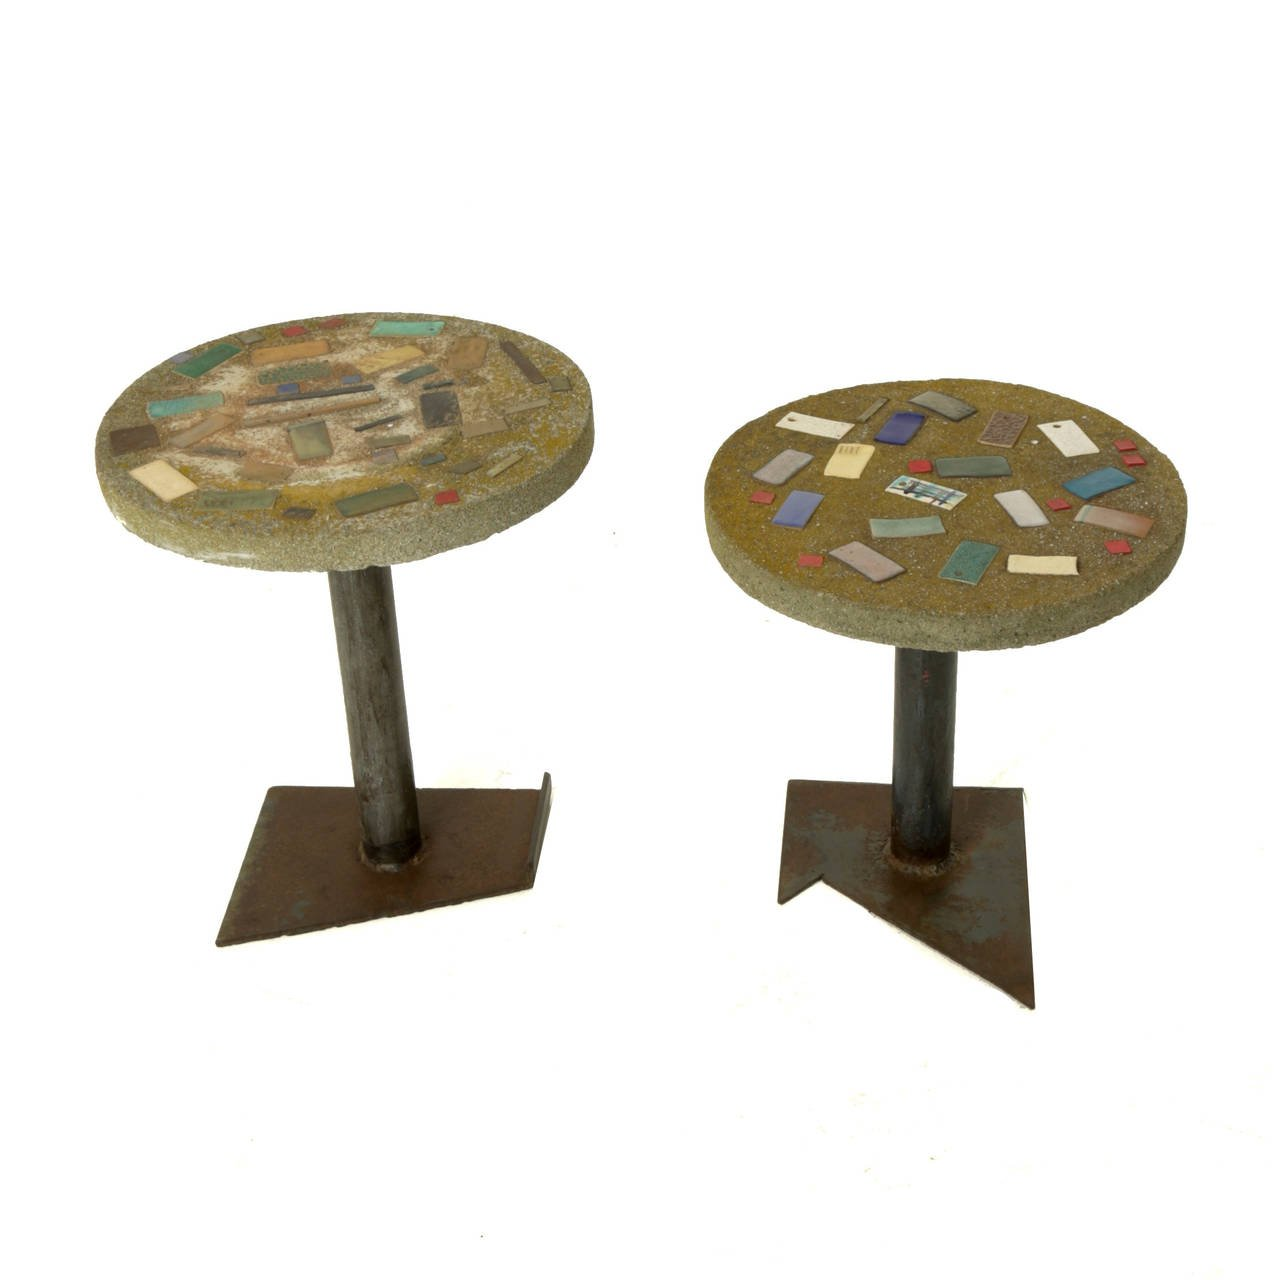 pair ceramic mosaic top concrete accent tables table outdoor american for tall silver lamps round lamp living room seattle lighting bellevue tree trunk coffee painted ideas small